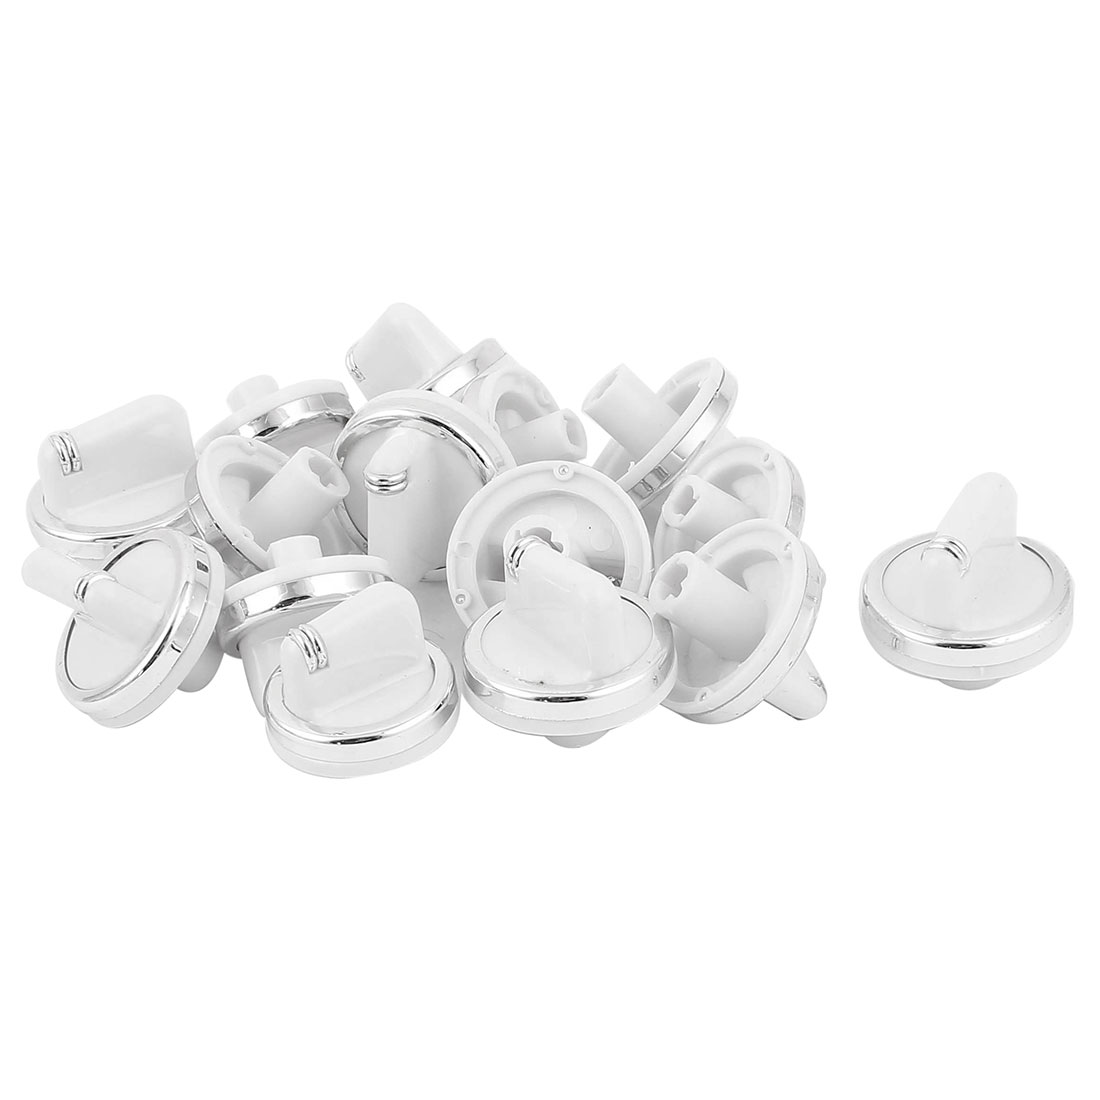 15 Pcs Kitchen White Plastic Gas Stove Cooker Oven Control Rotary Switch Knobs